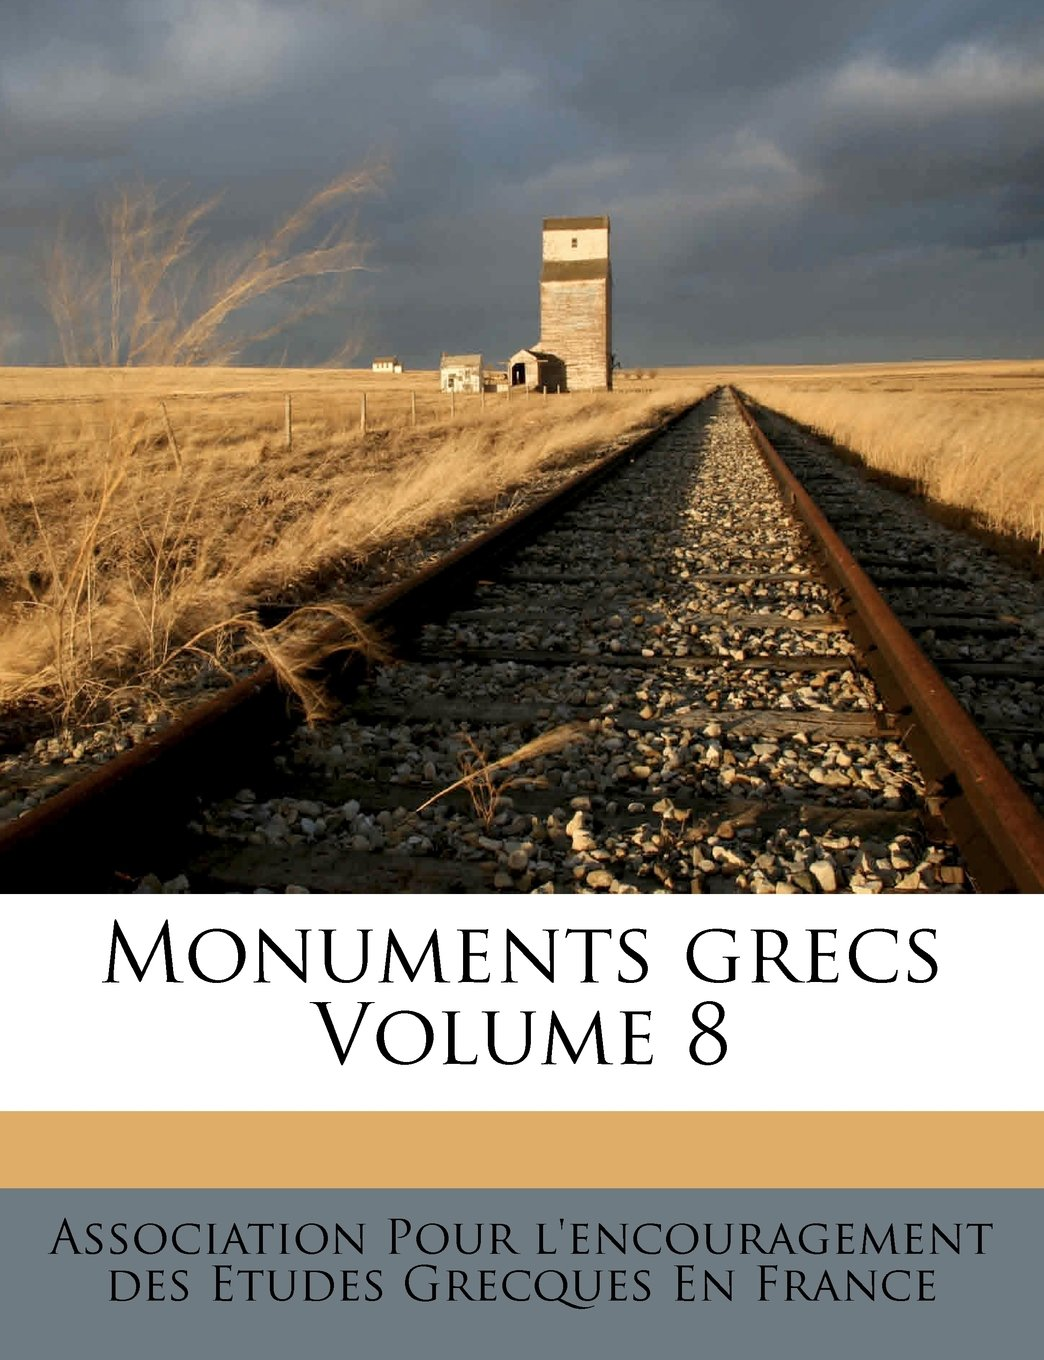 Download Monuments grecs Volume 8 (French Edition) PDF